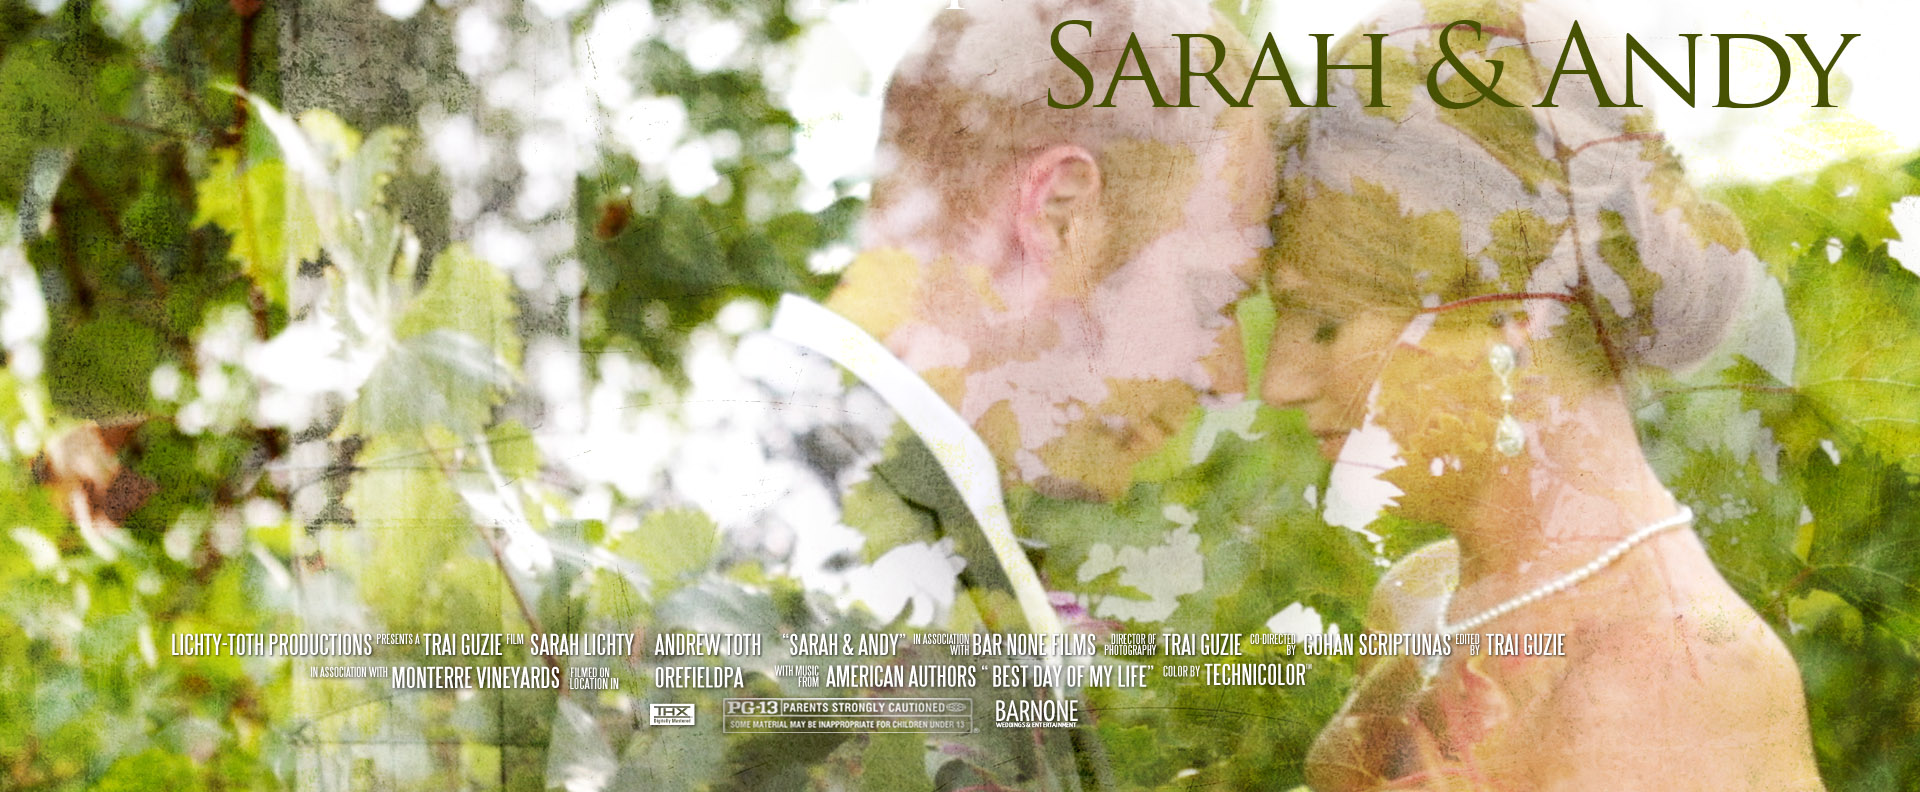 Same Day Edit Film - Montere Vineyards - Orefield PA Wedding Video